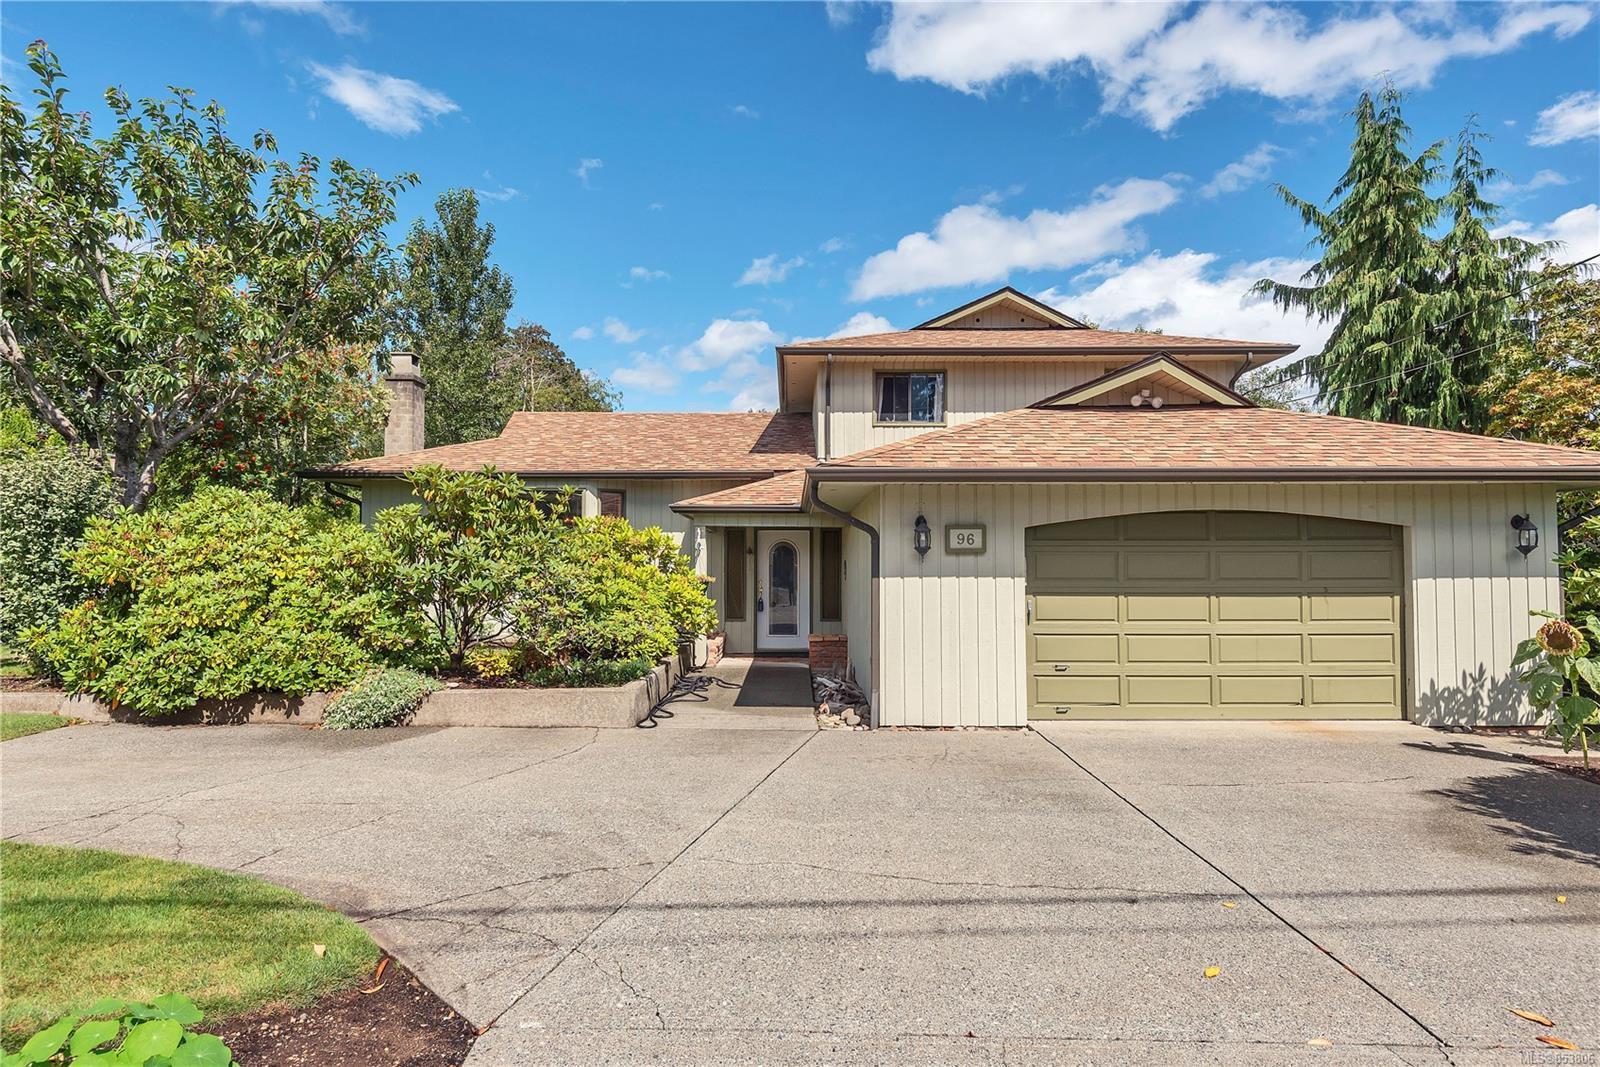 Main Photo: 96 Fairwinds Rd in : CR Campbell River South House for sale (Campbell River)  : MLS®# 853806